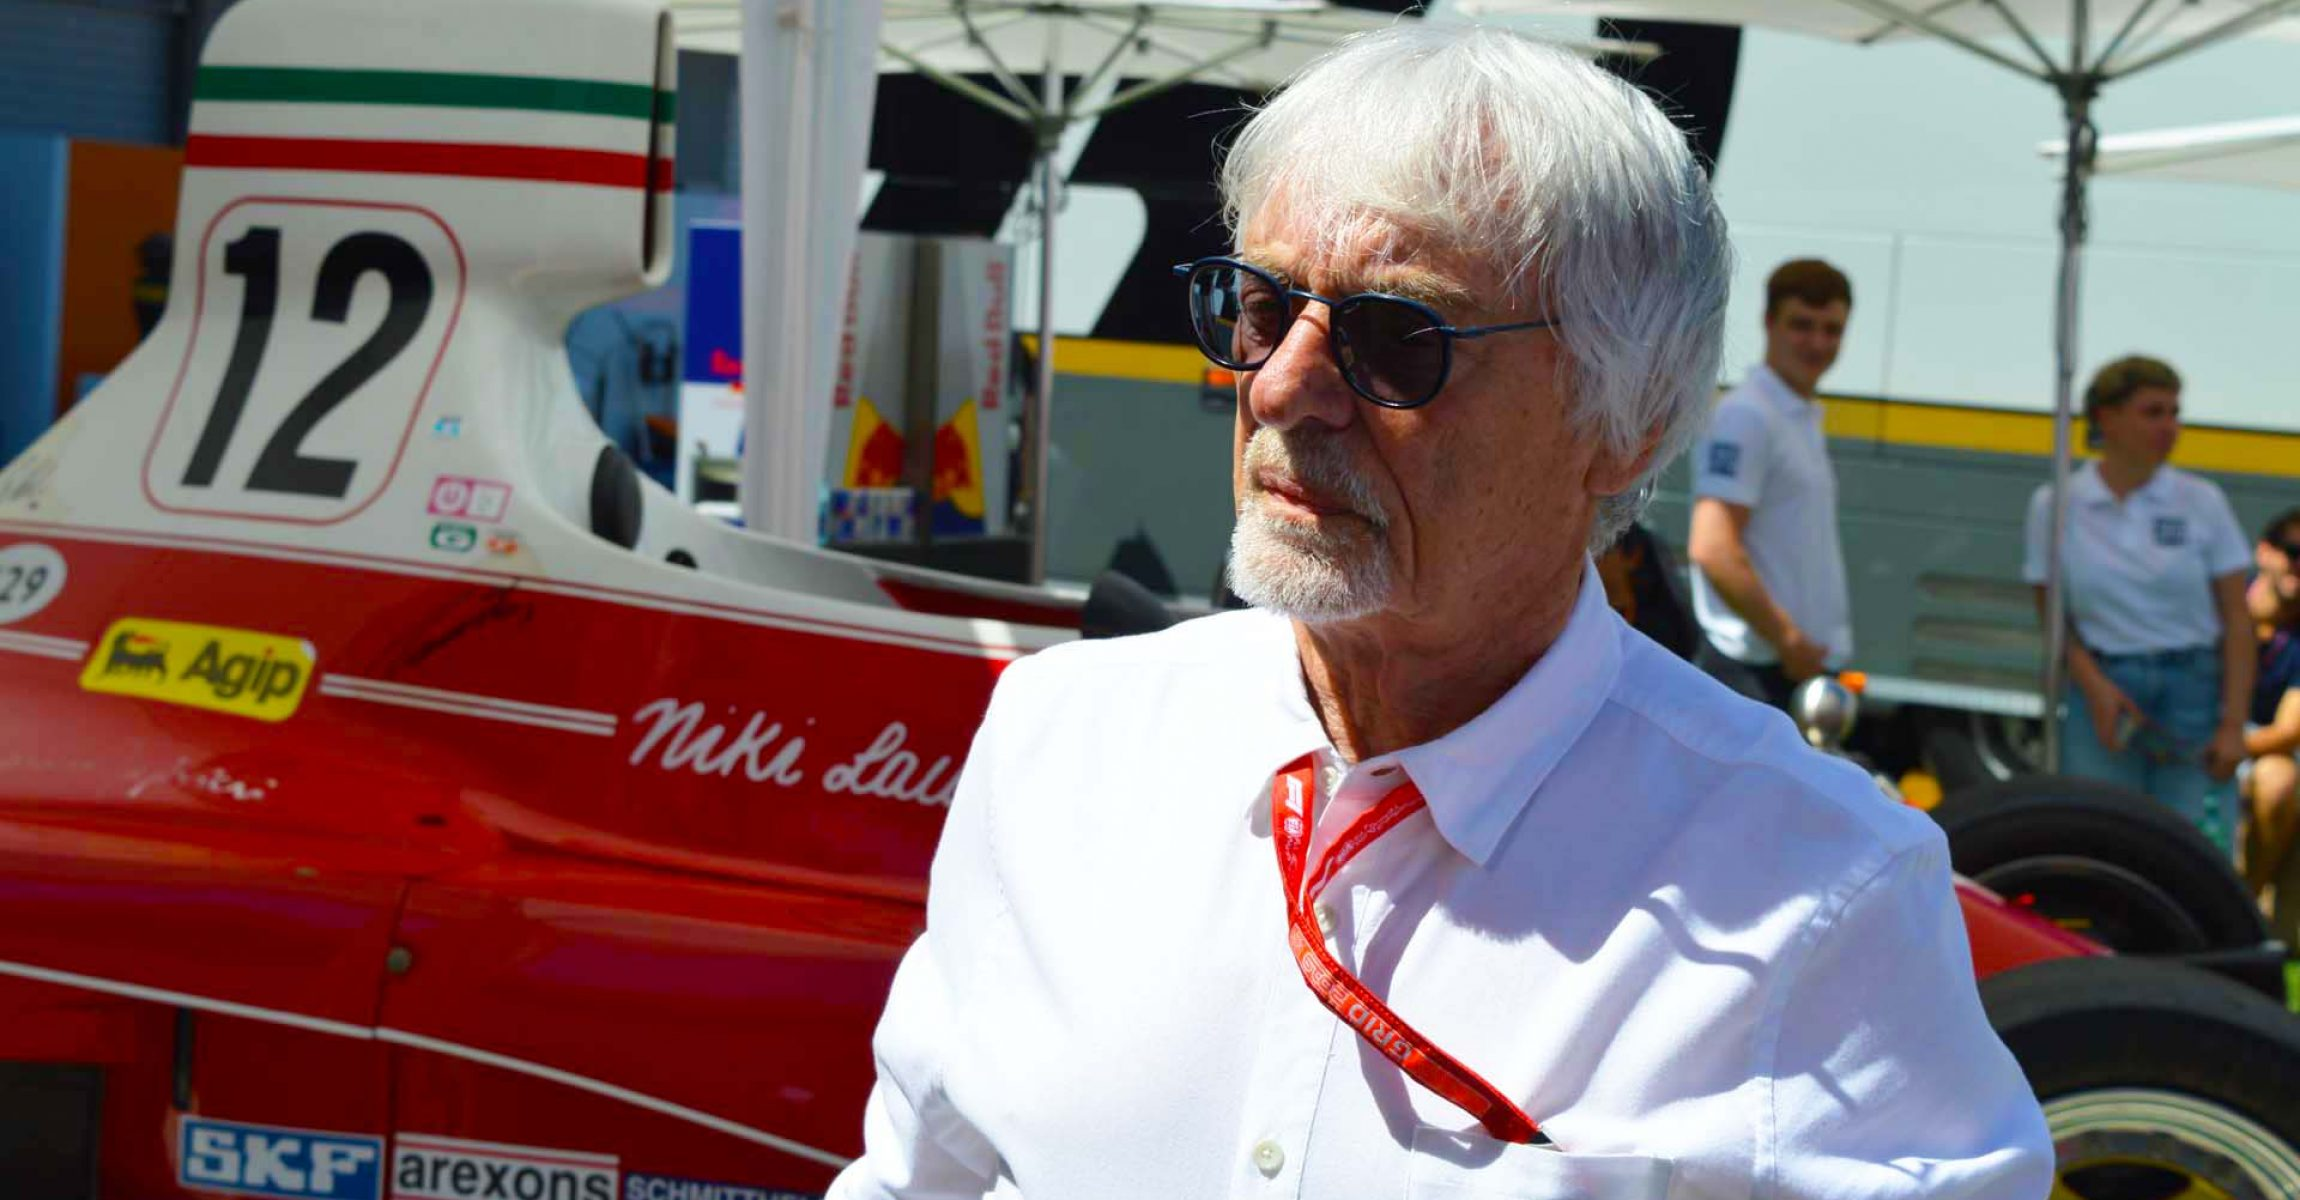 Bernie Ecclestone with Niki Lauda's car in the background, Red Bull Ring, Spielberg, Austria, 28.07.2019